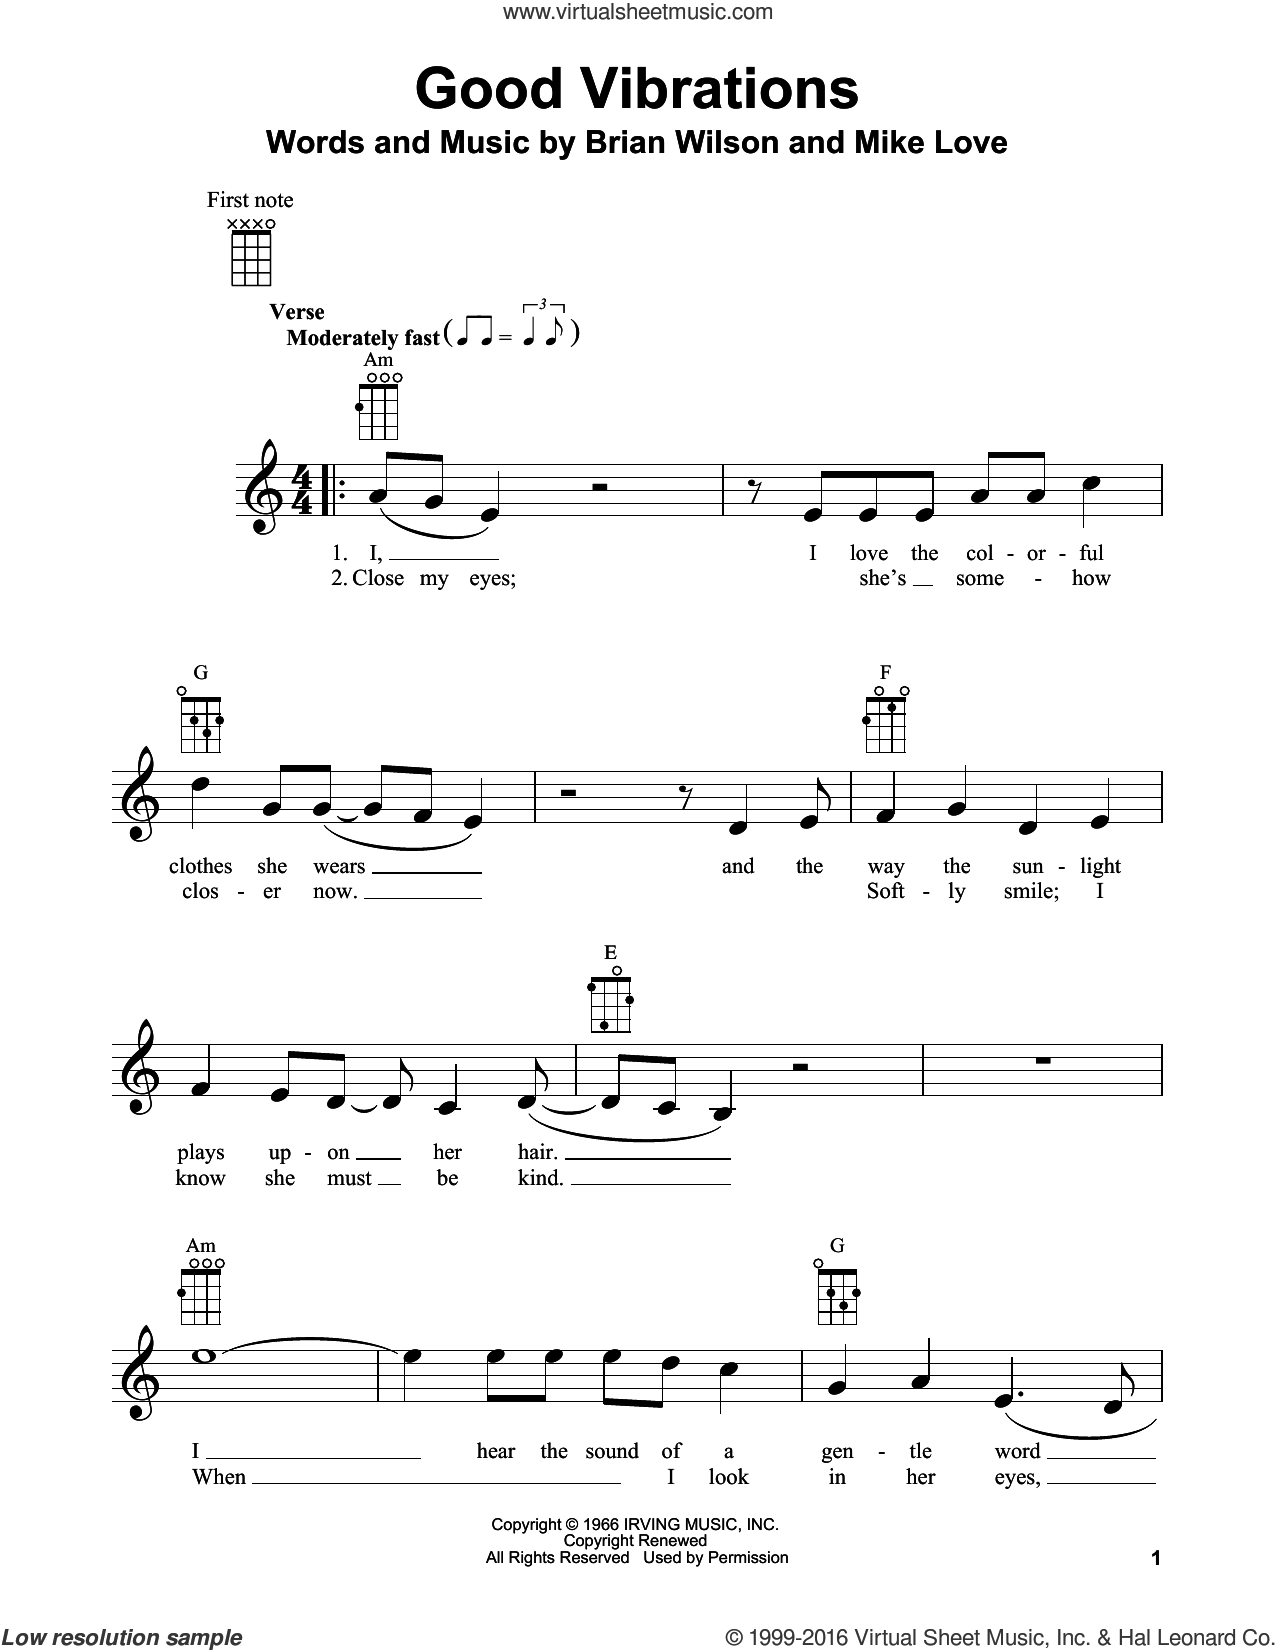 Good Vibrations sheet music for ukulele by The Beach Boys, Brian Wilson and Mike Love, intermediate skill level